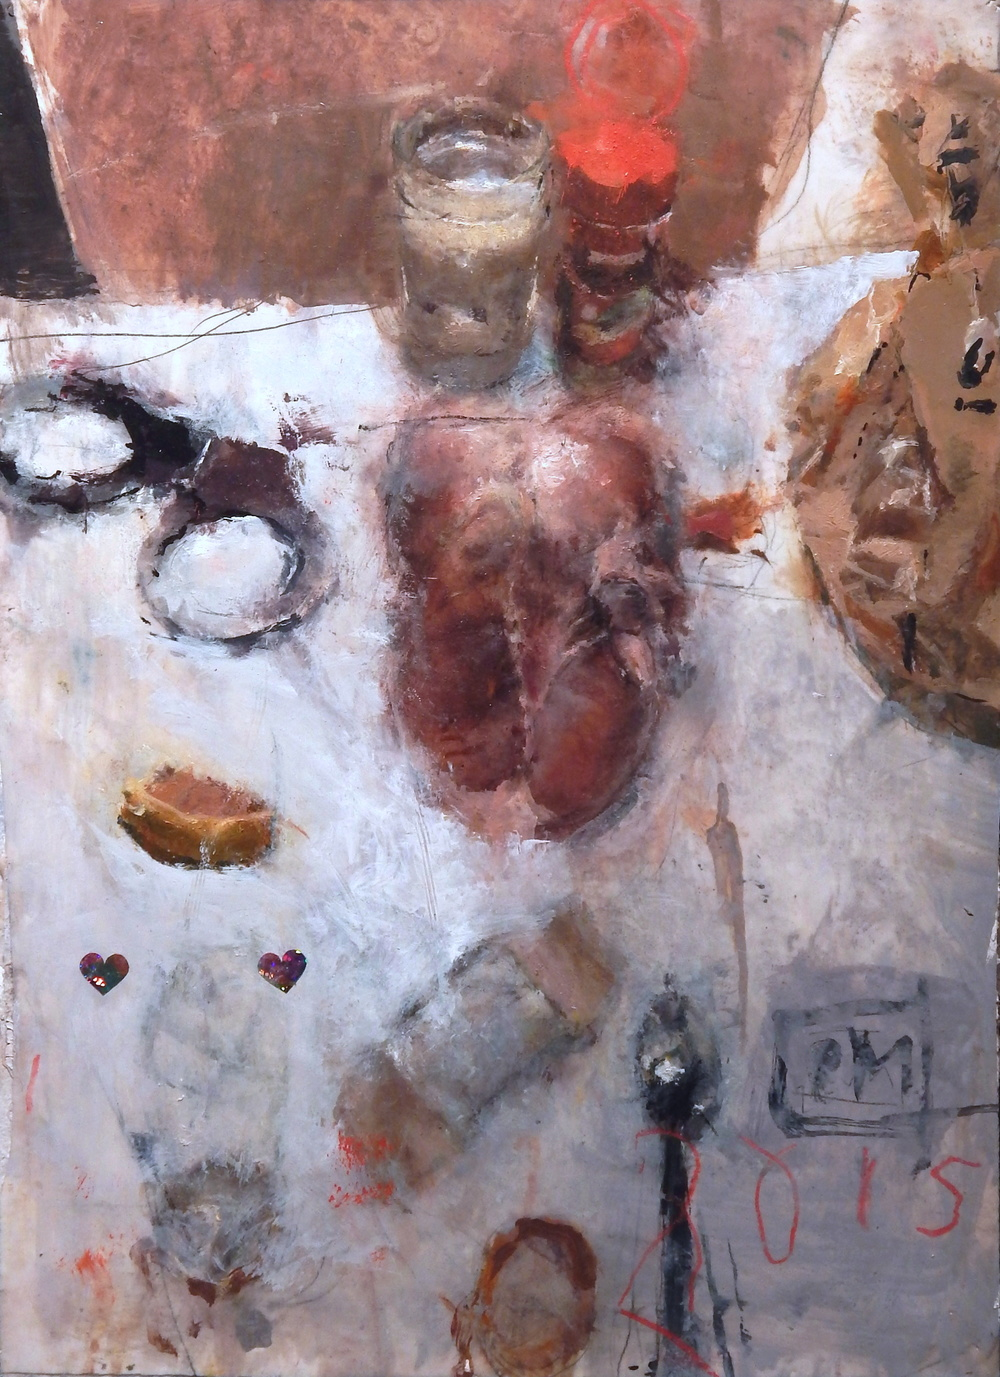 Still Life with Chicken, Handcuffs and Plastic Bag